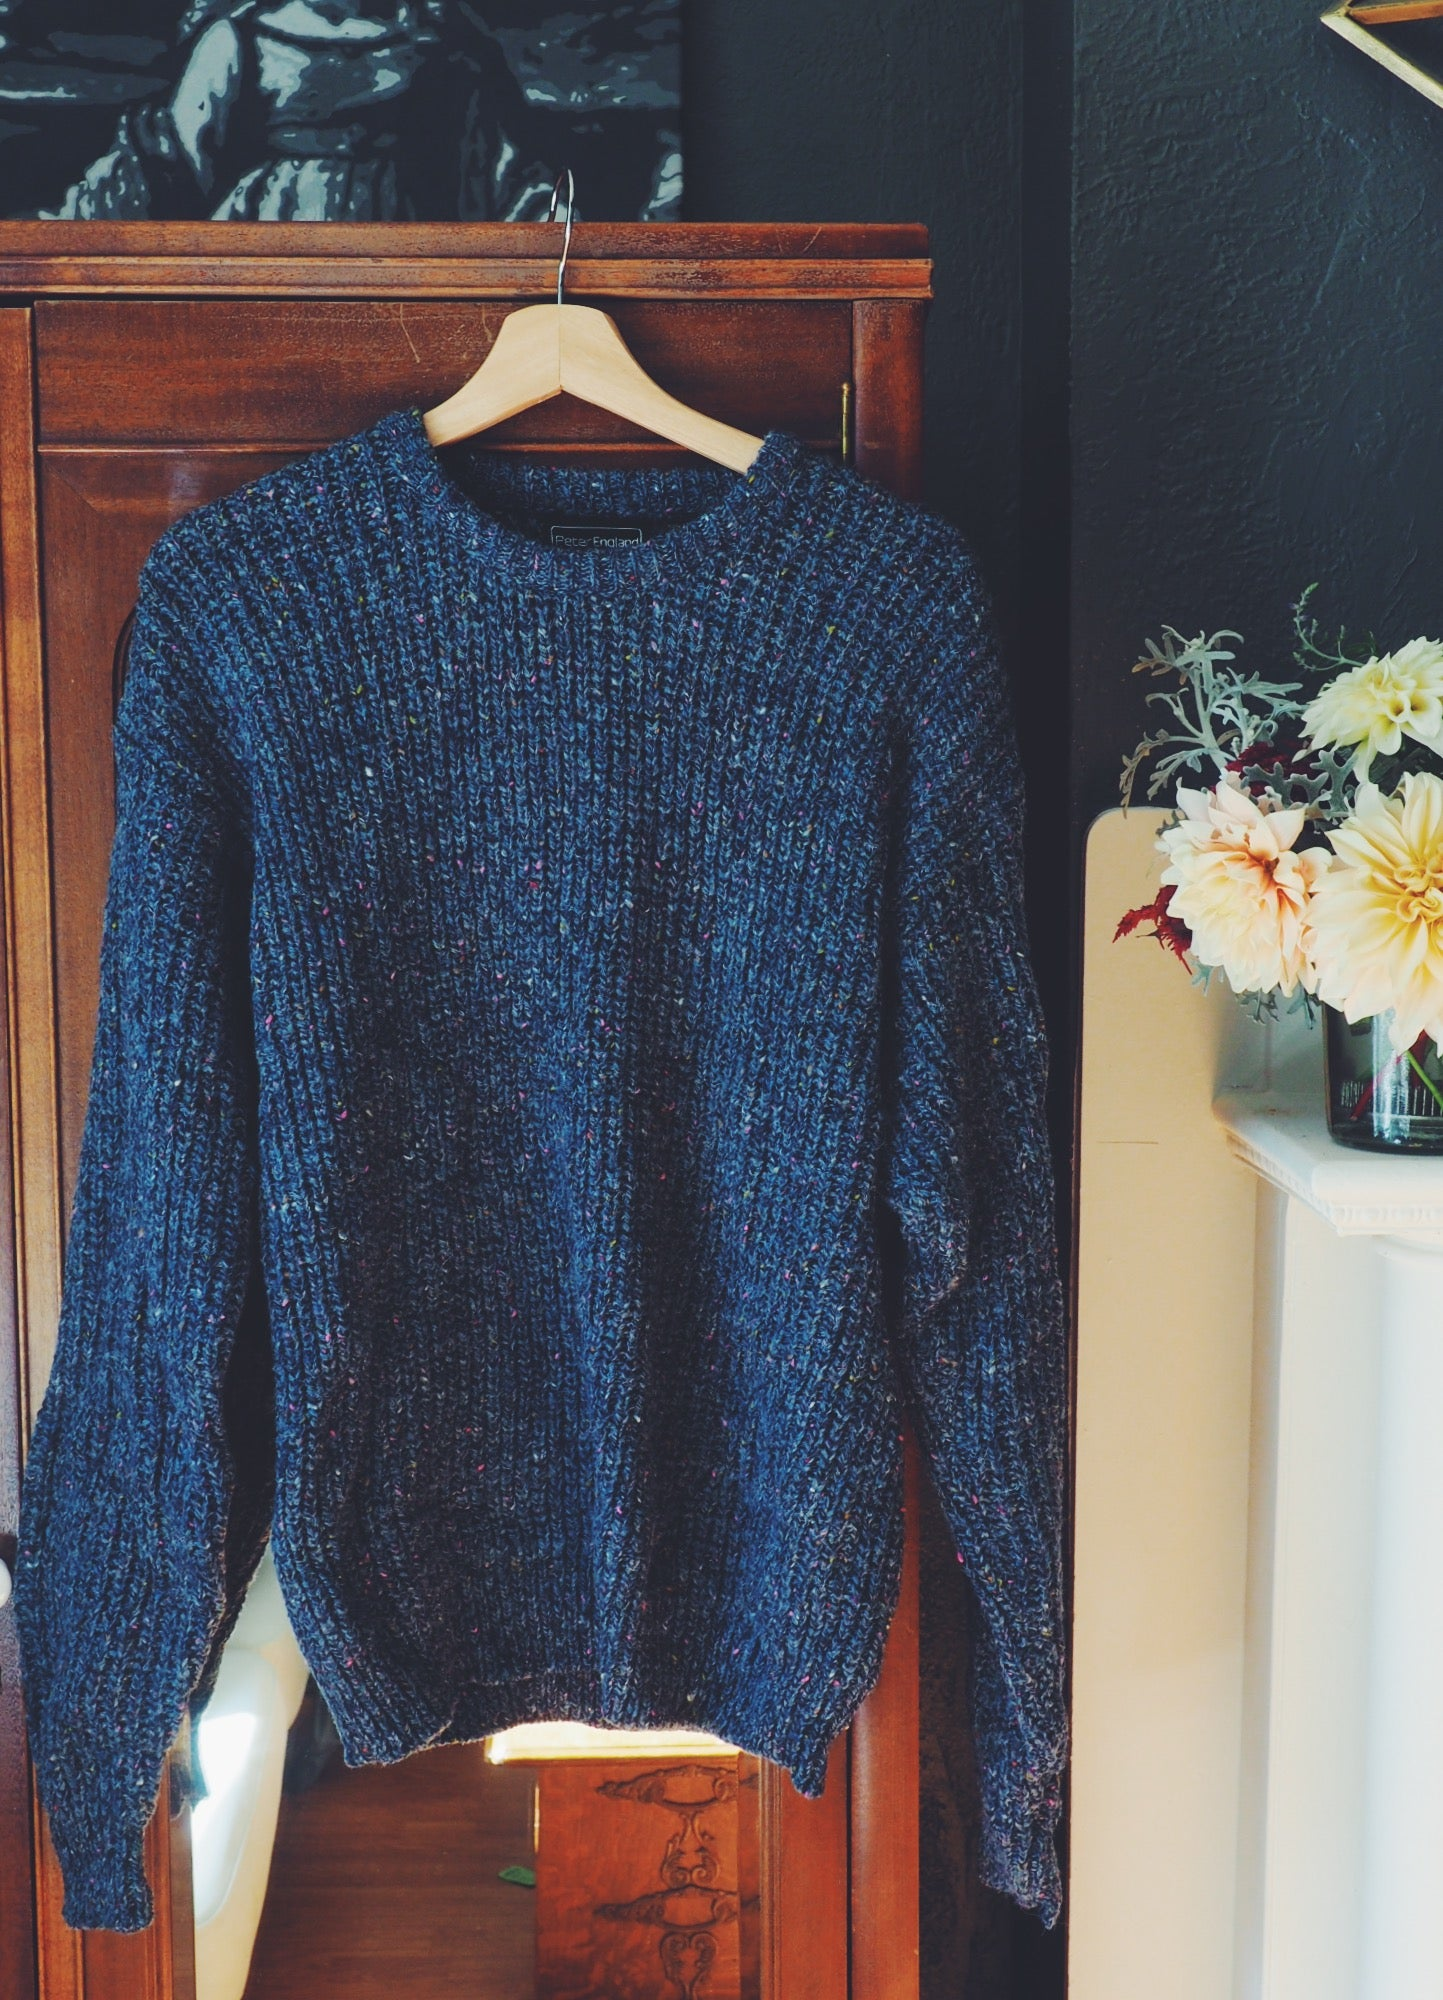 90s Knit Sweater in Blue